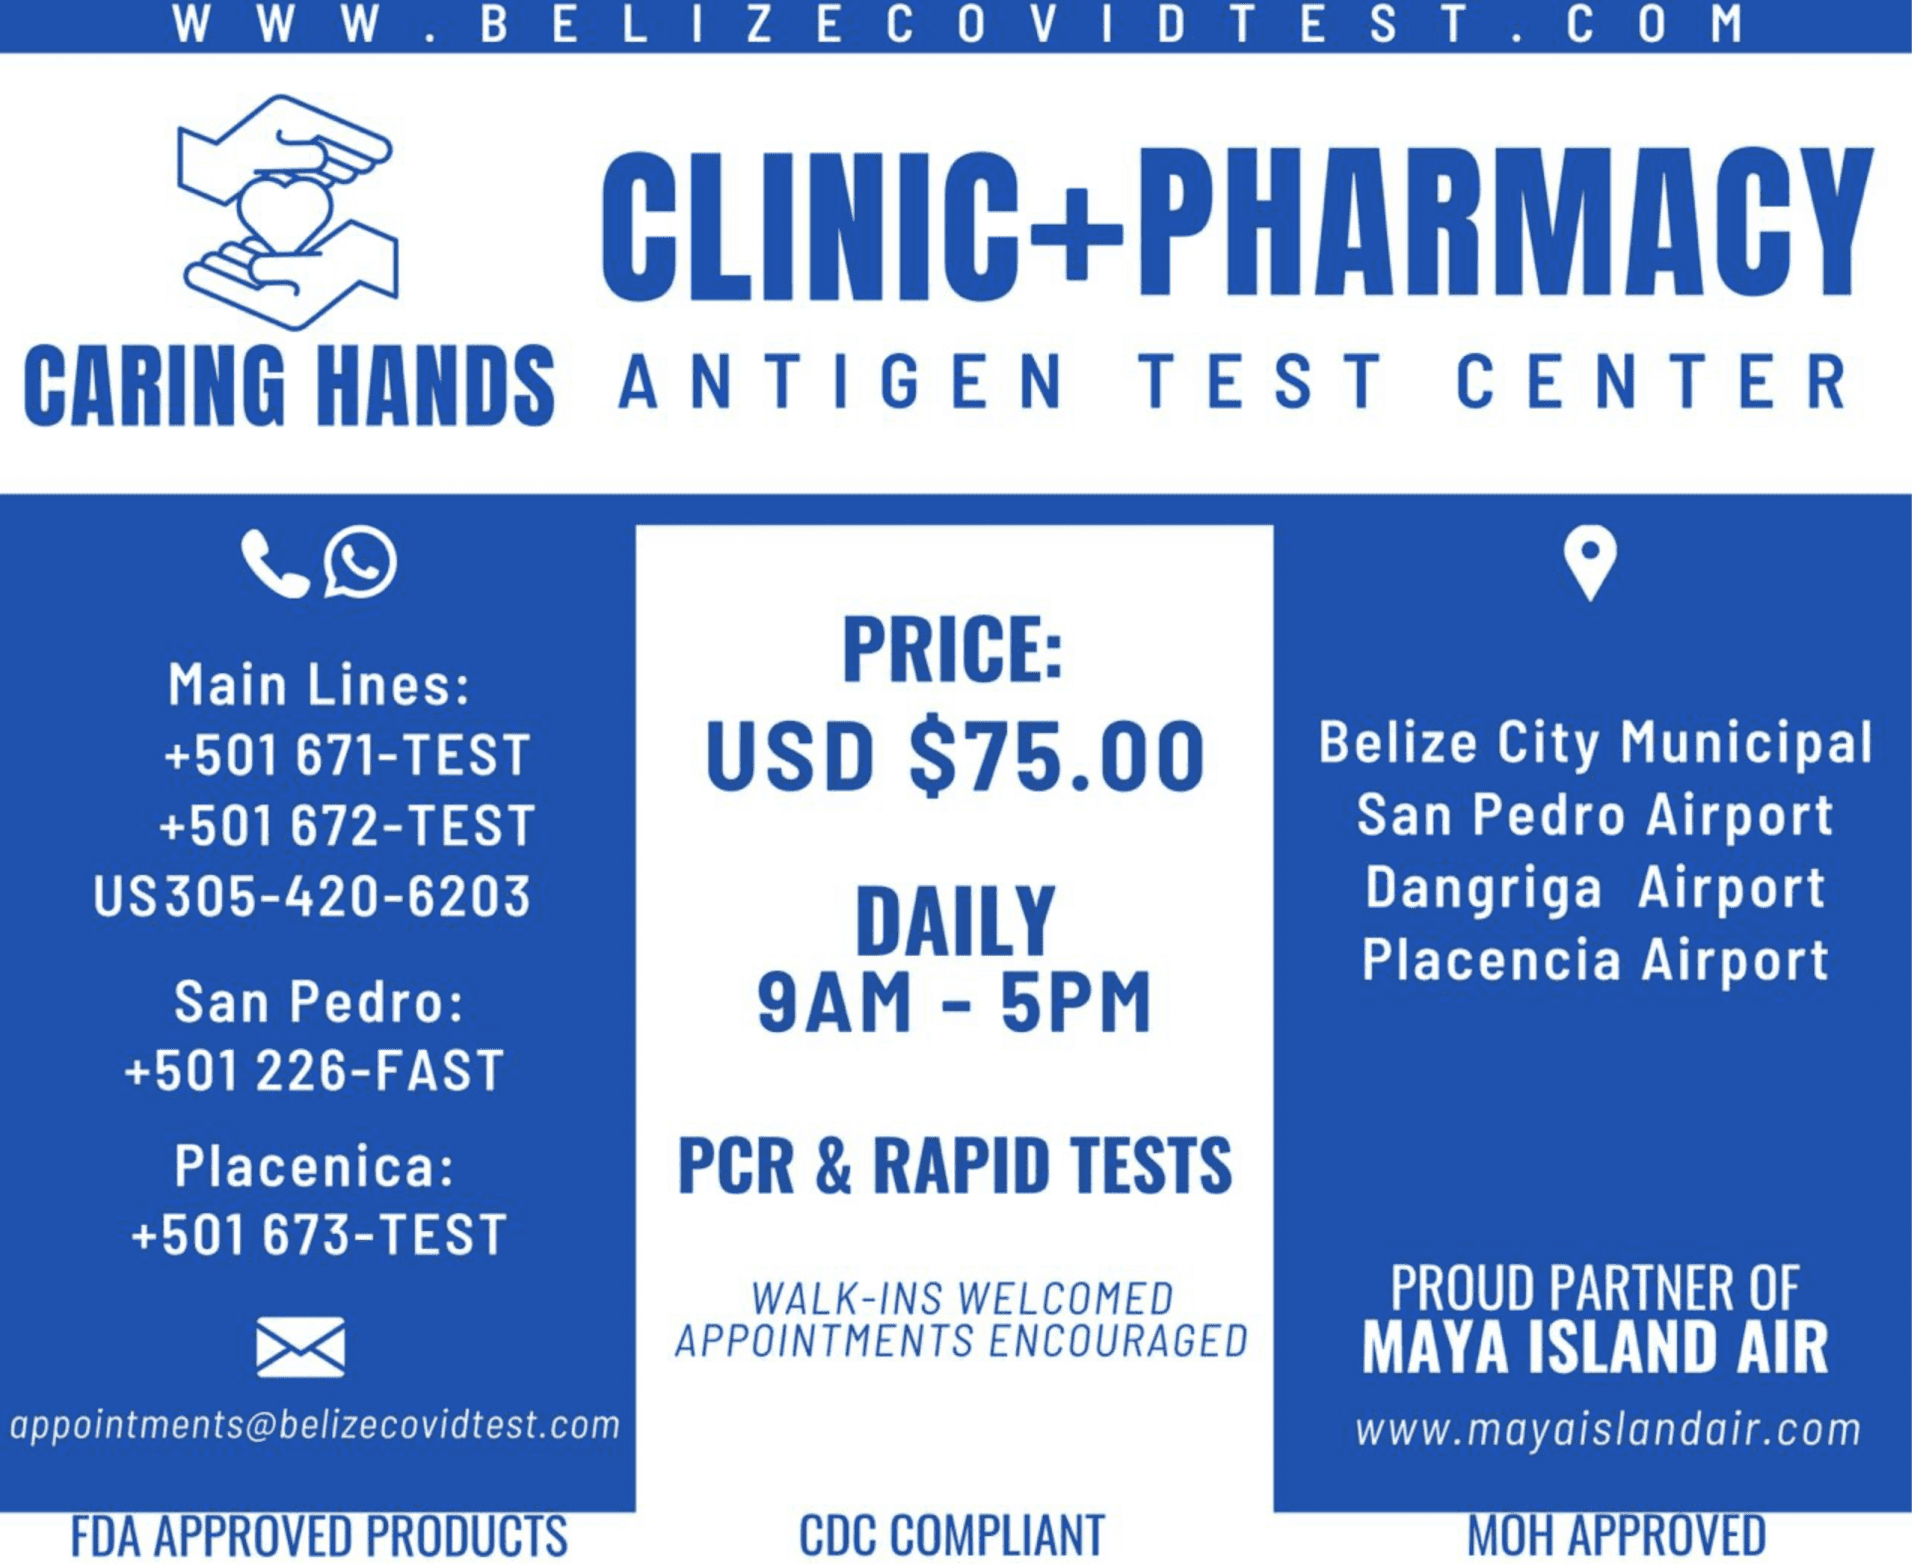 Maya island air caring hands clinic covid test belize